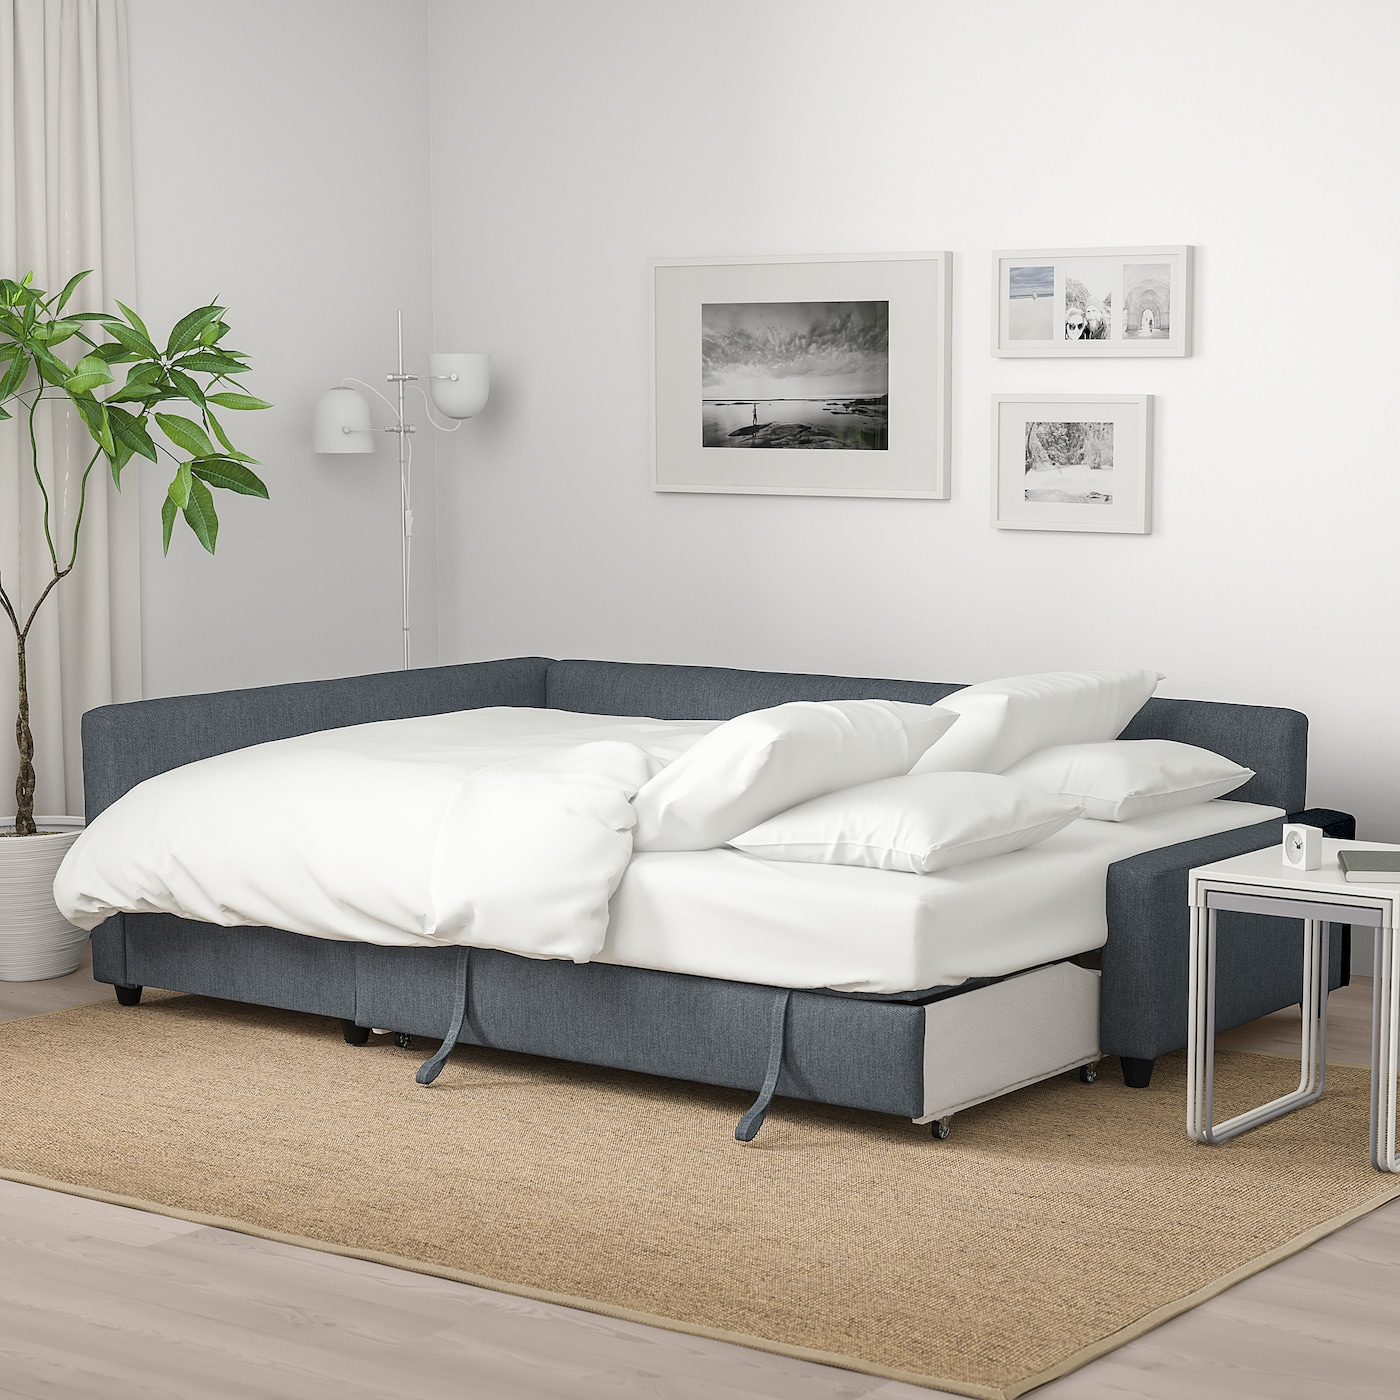 FRIHETEN Corner sofa-bed with storage - Hyllie dark grey